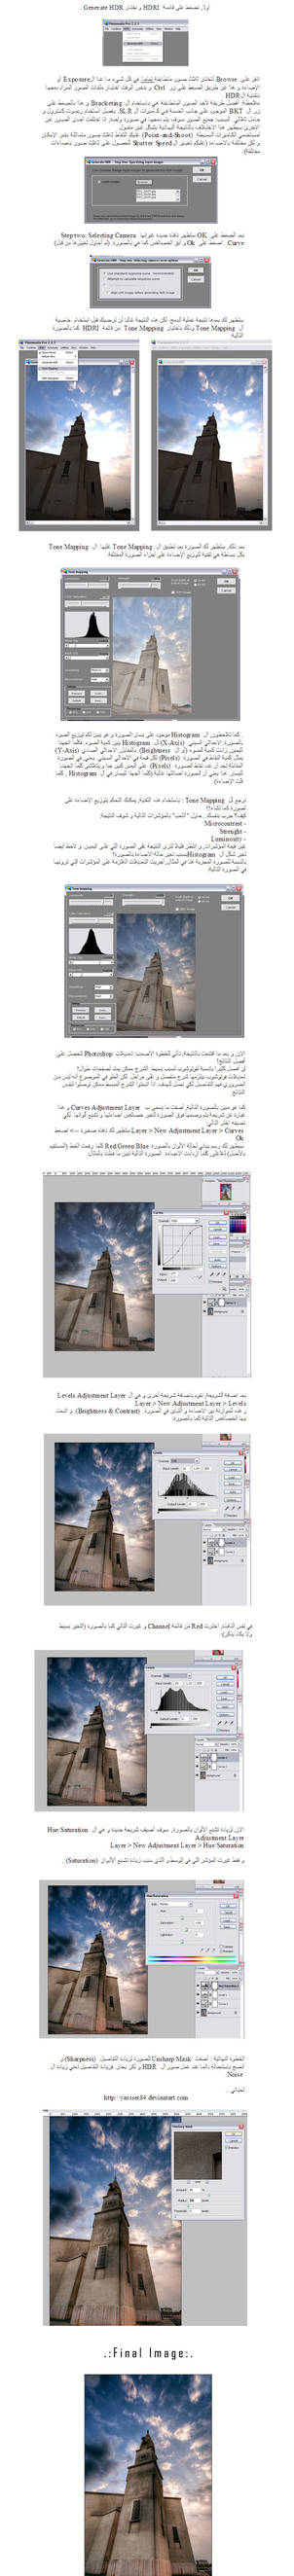 HDR Toturial -Arabic Version-